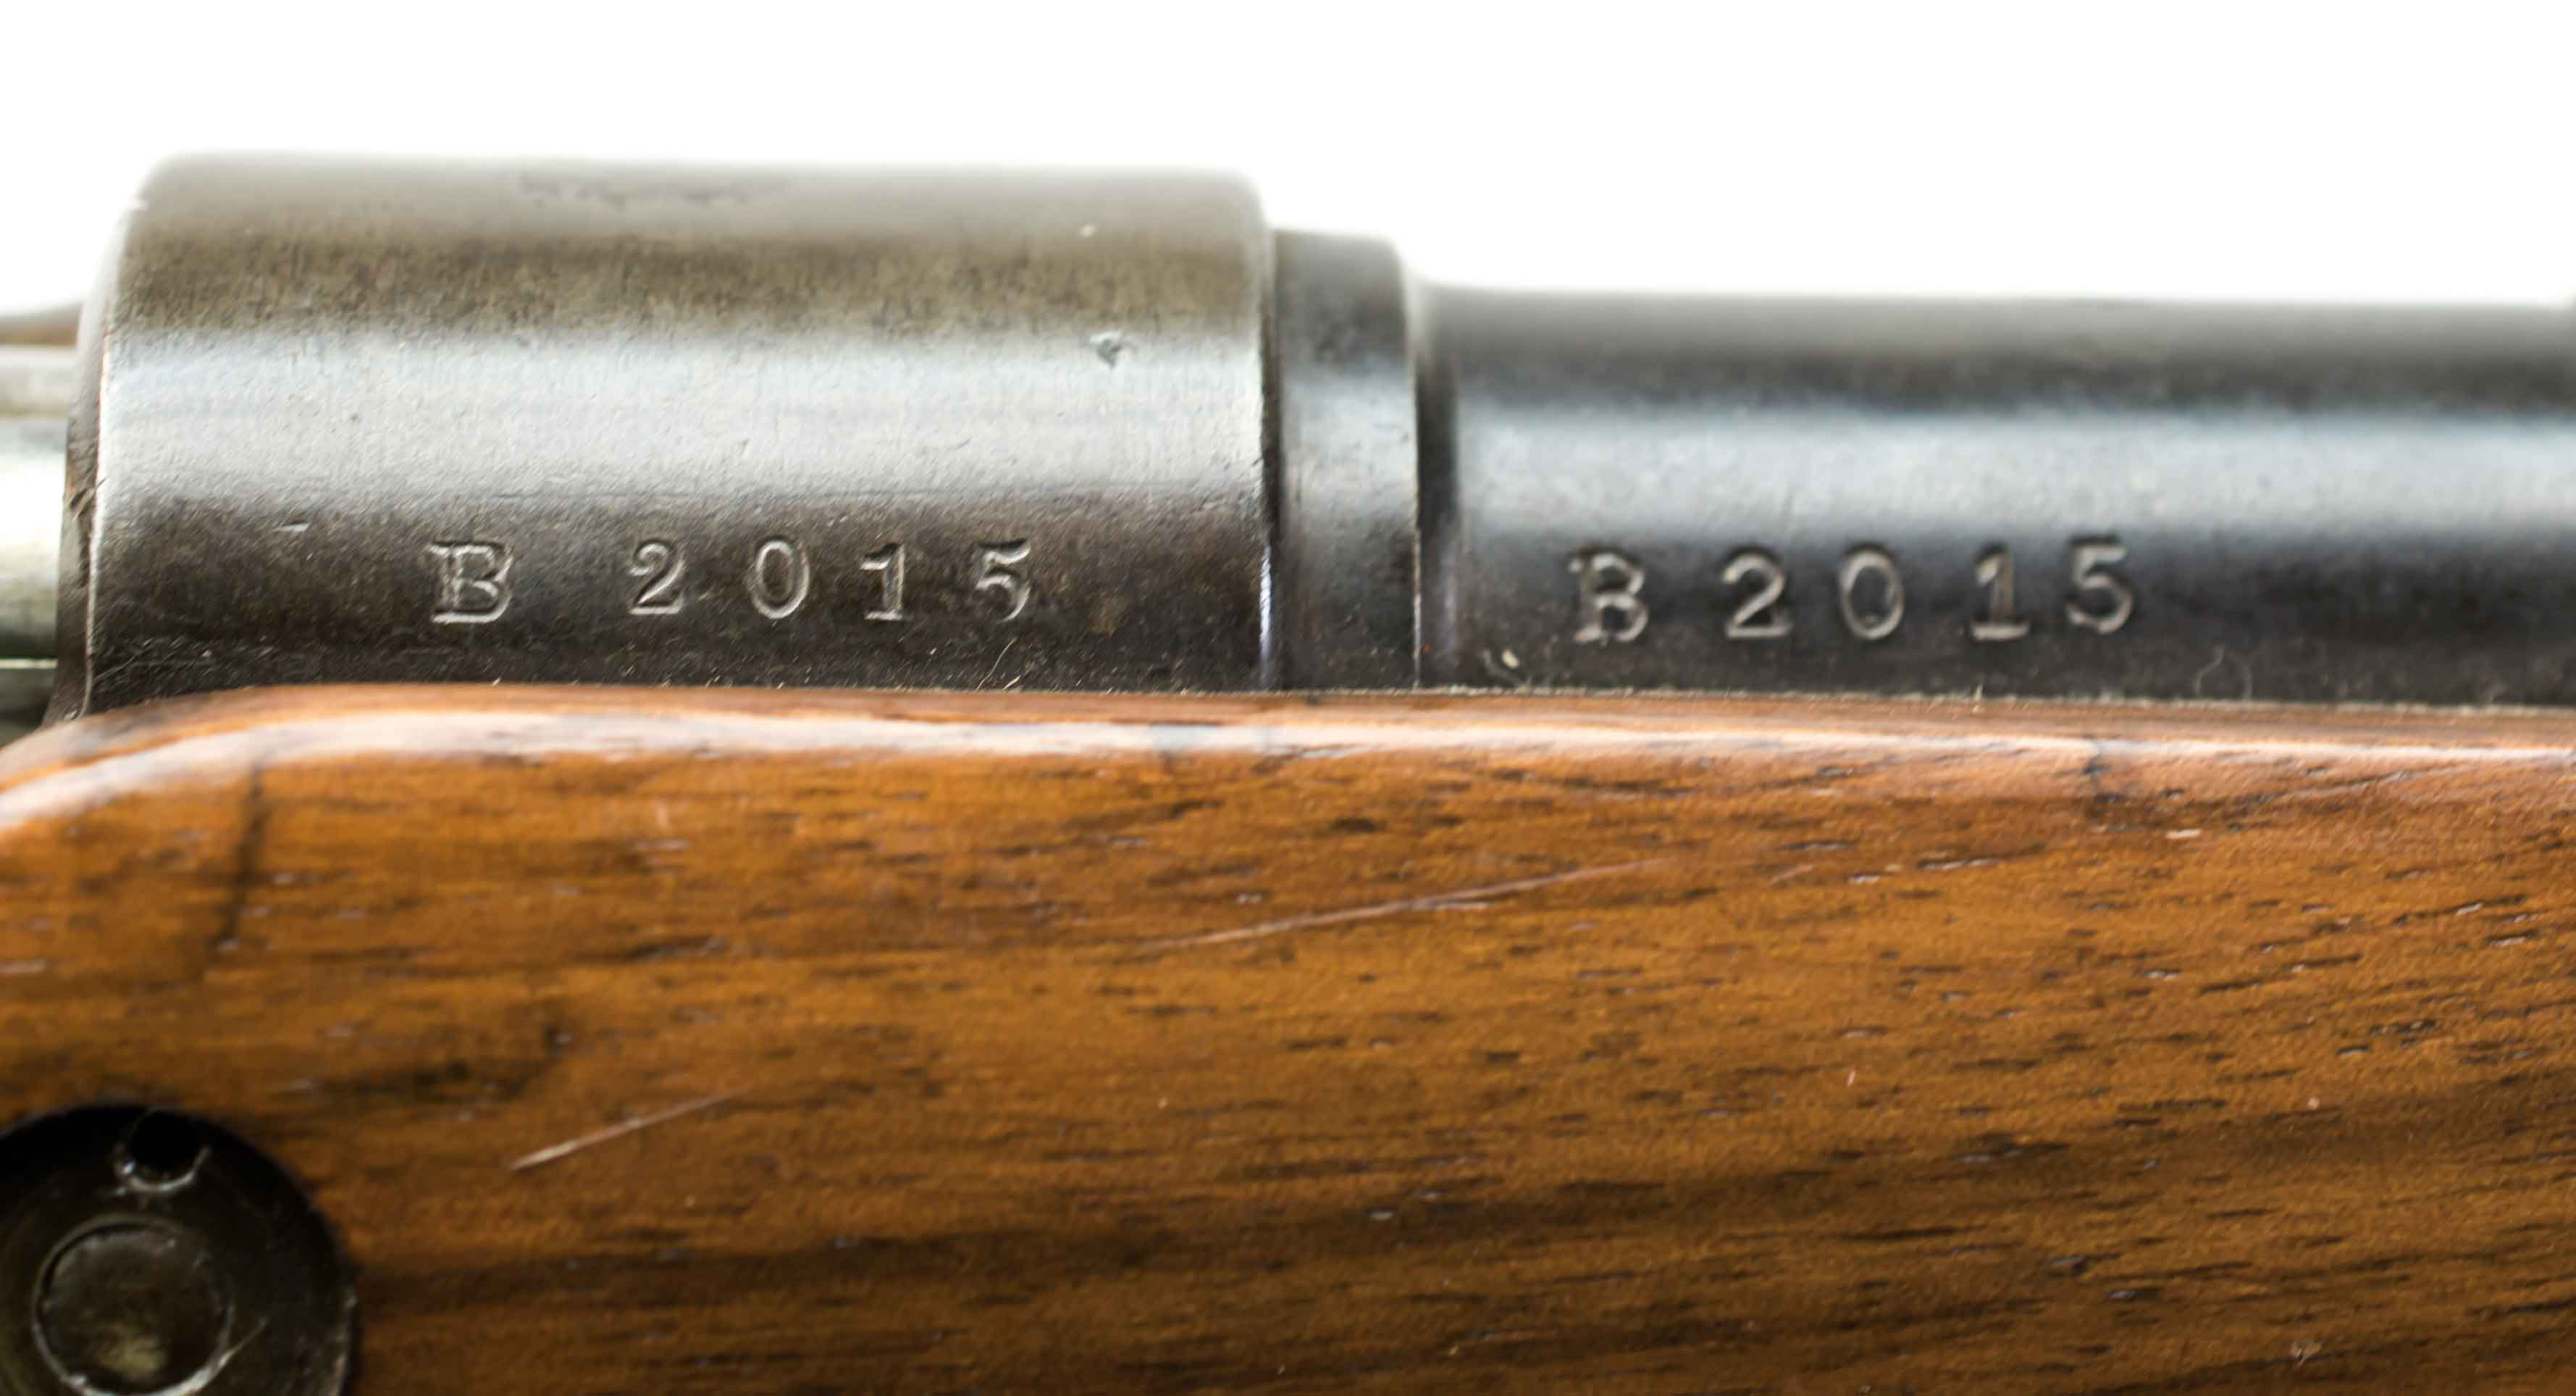 ARGENTINE MAUSER 1891 7 65ARG (Auction ID: 5176814, End Time